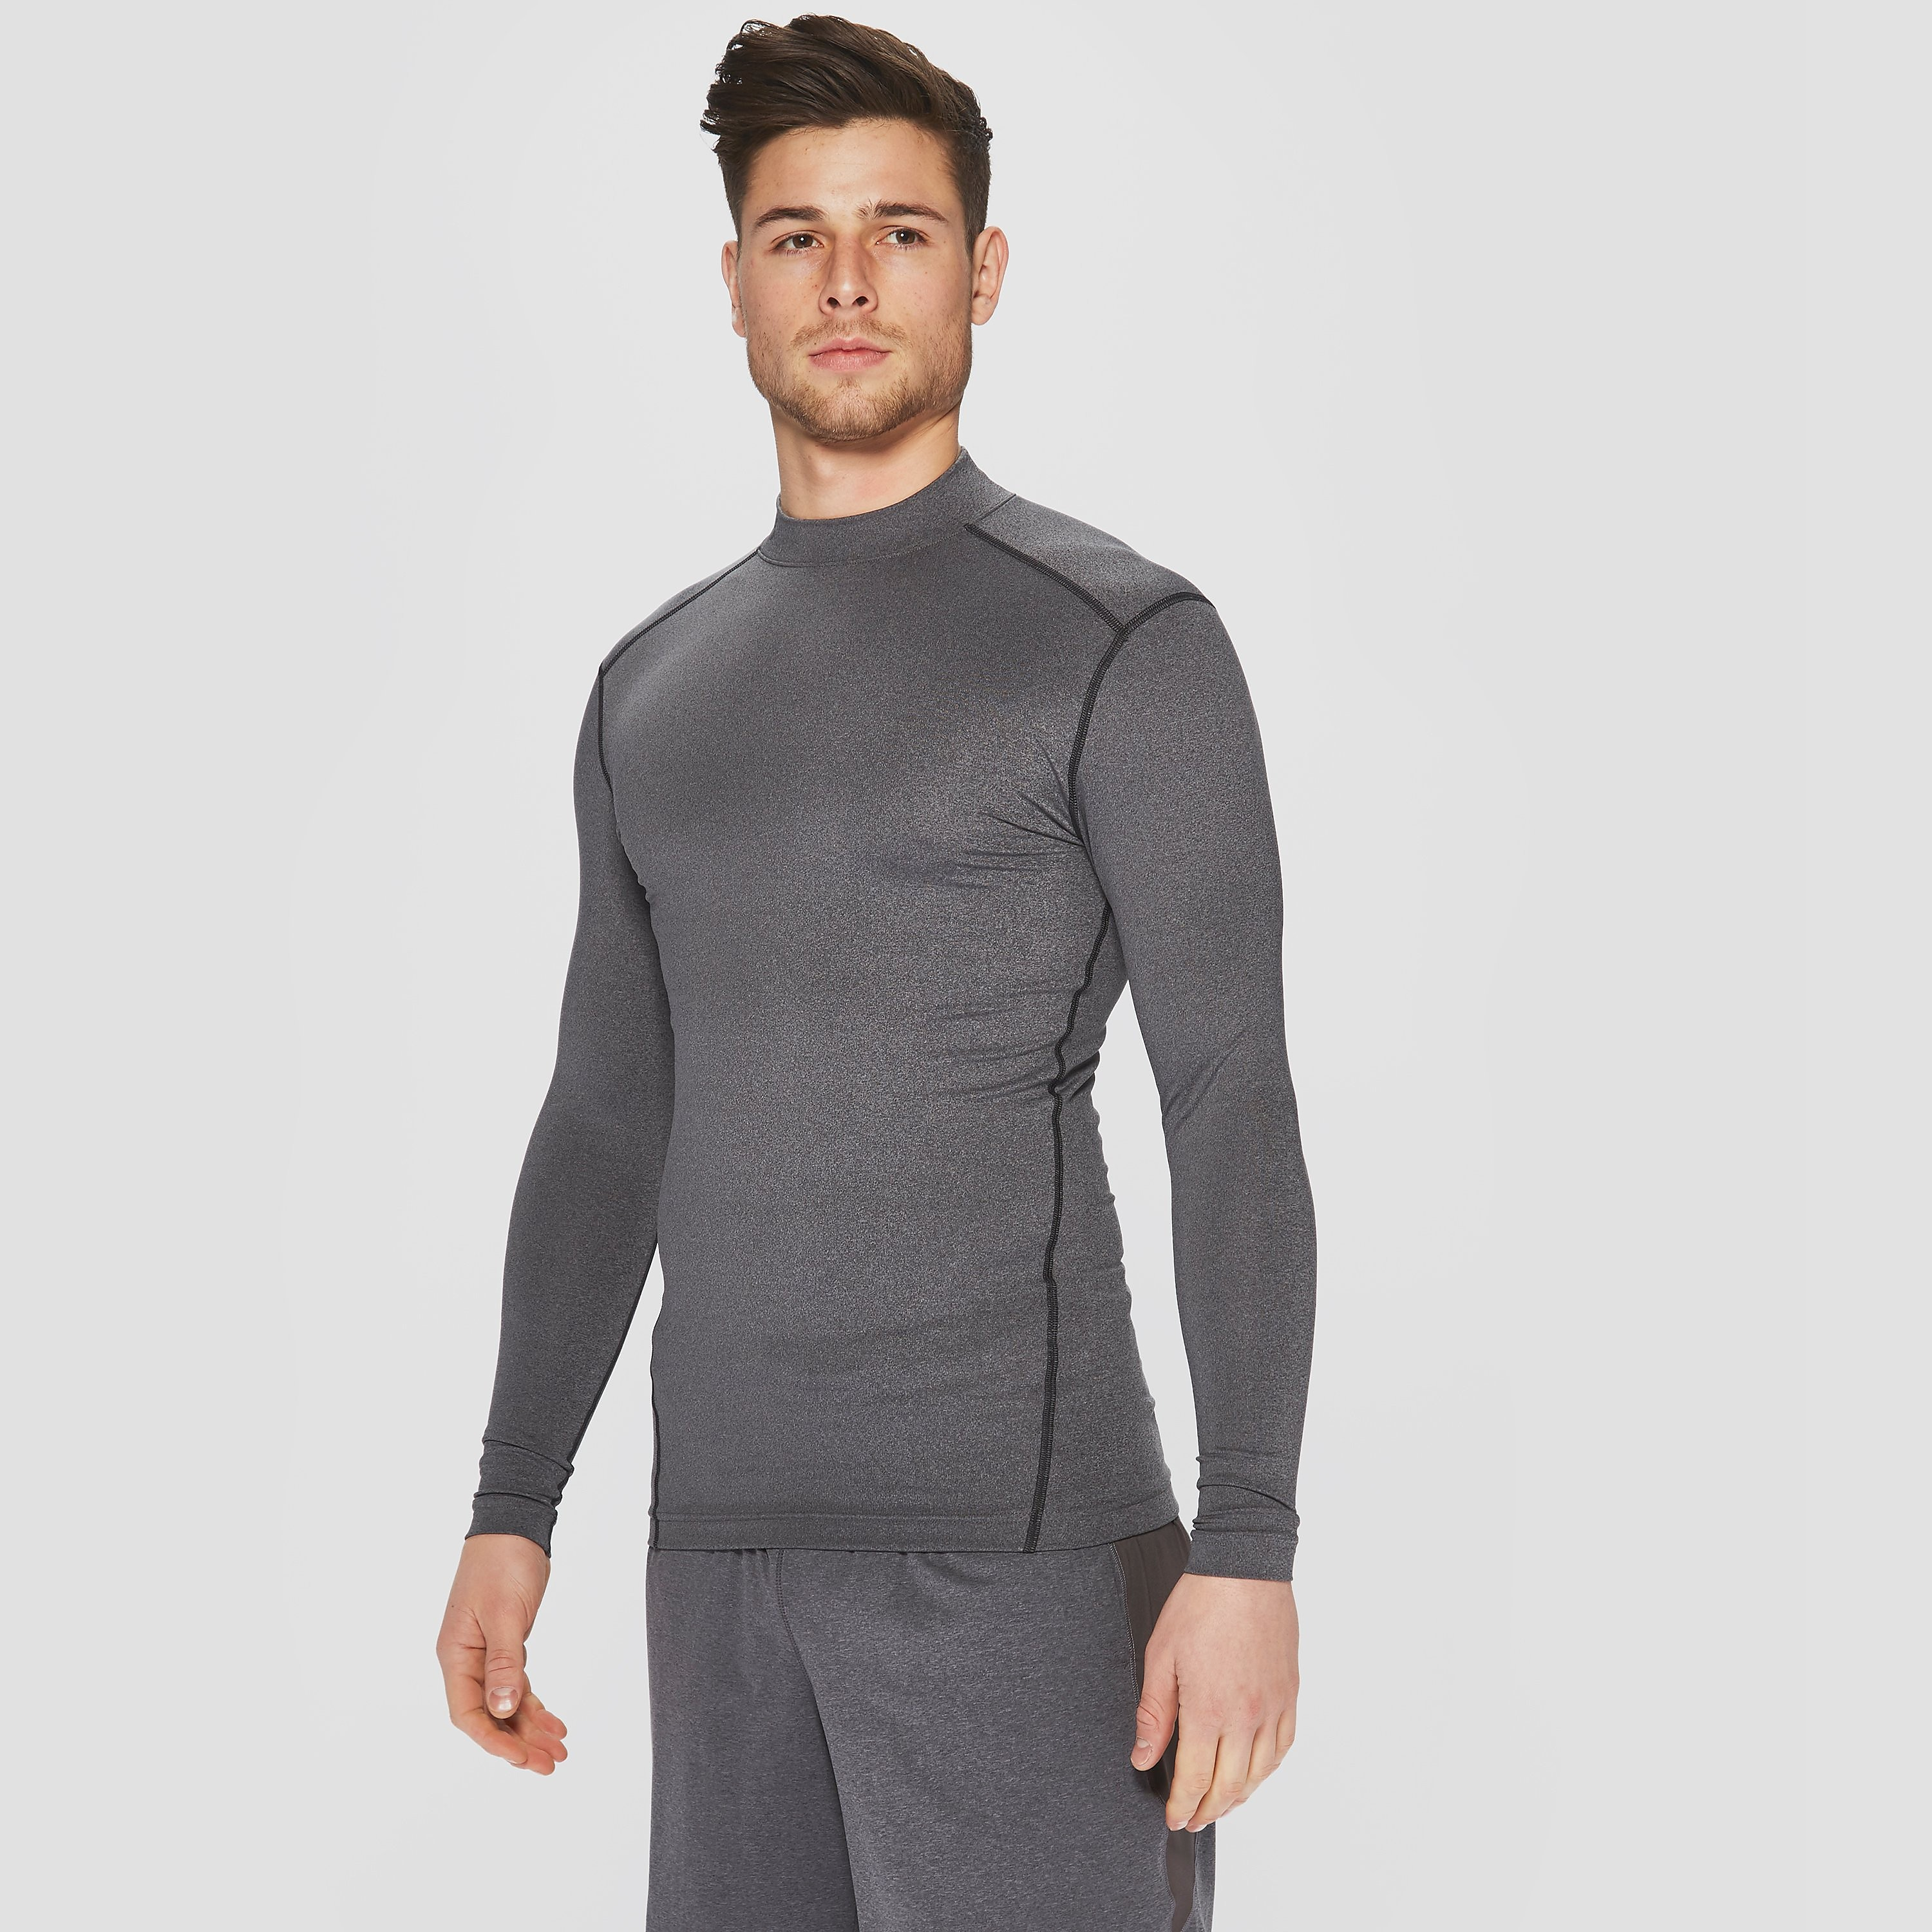 Under Armour ColdGear Armour Compression Mock Men's Running Top